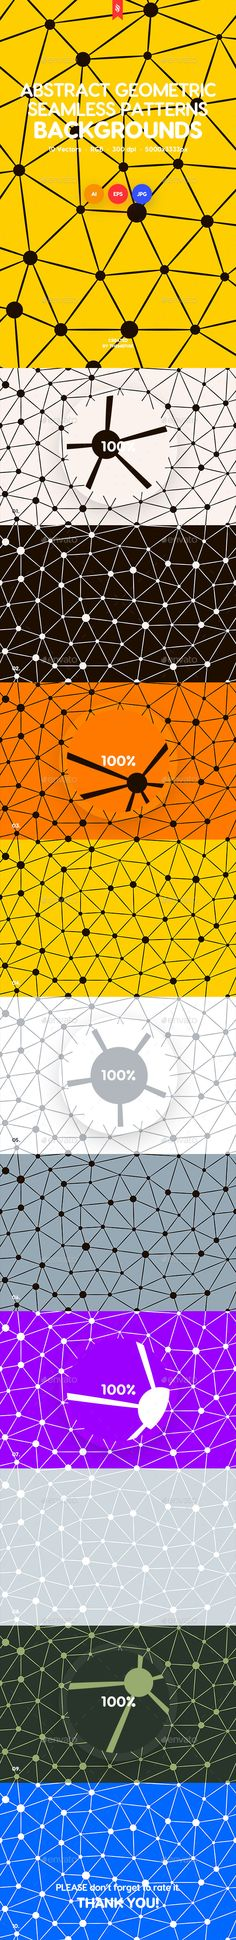 Geometric Seamless Patterns with Connected Lines and Dots Backgrounds - #Patterns #Backgrounds